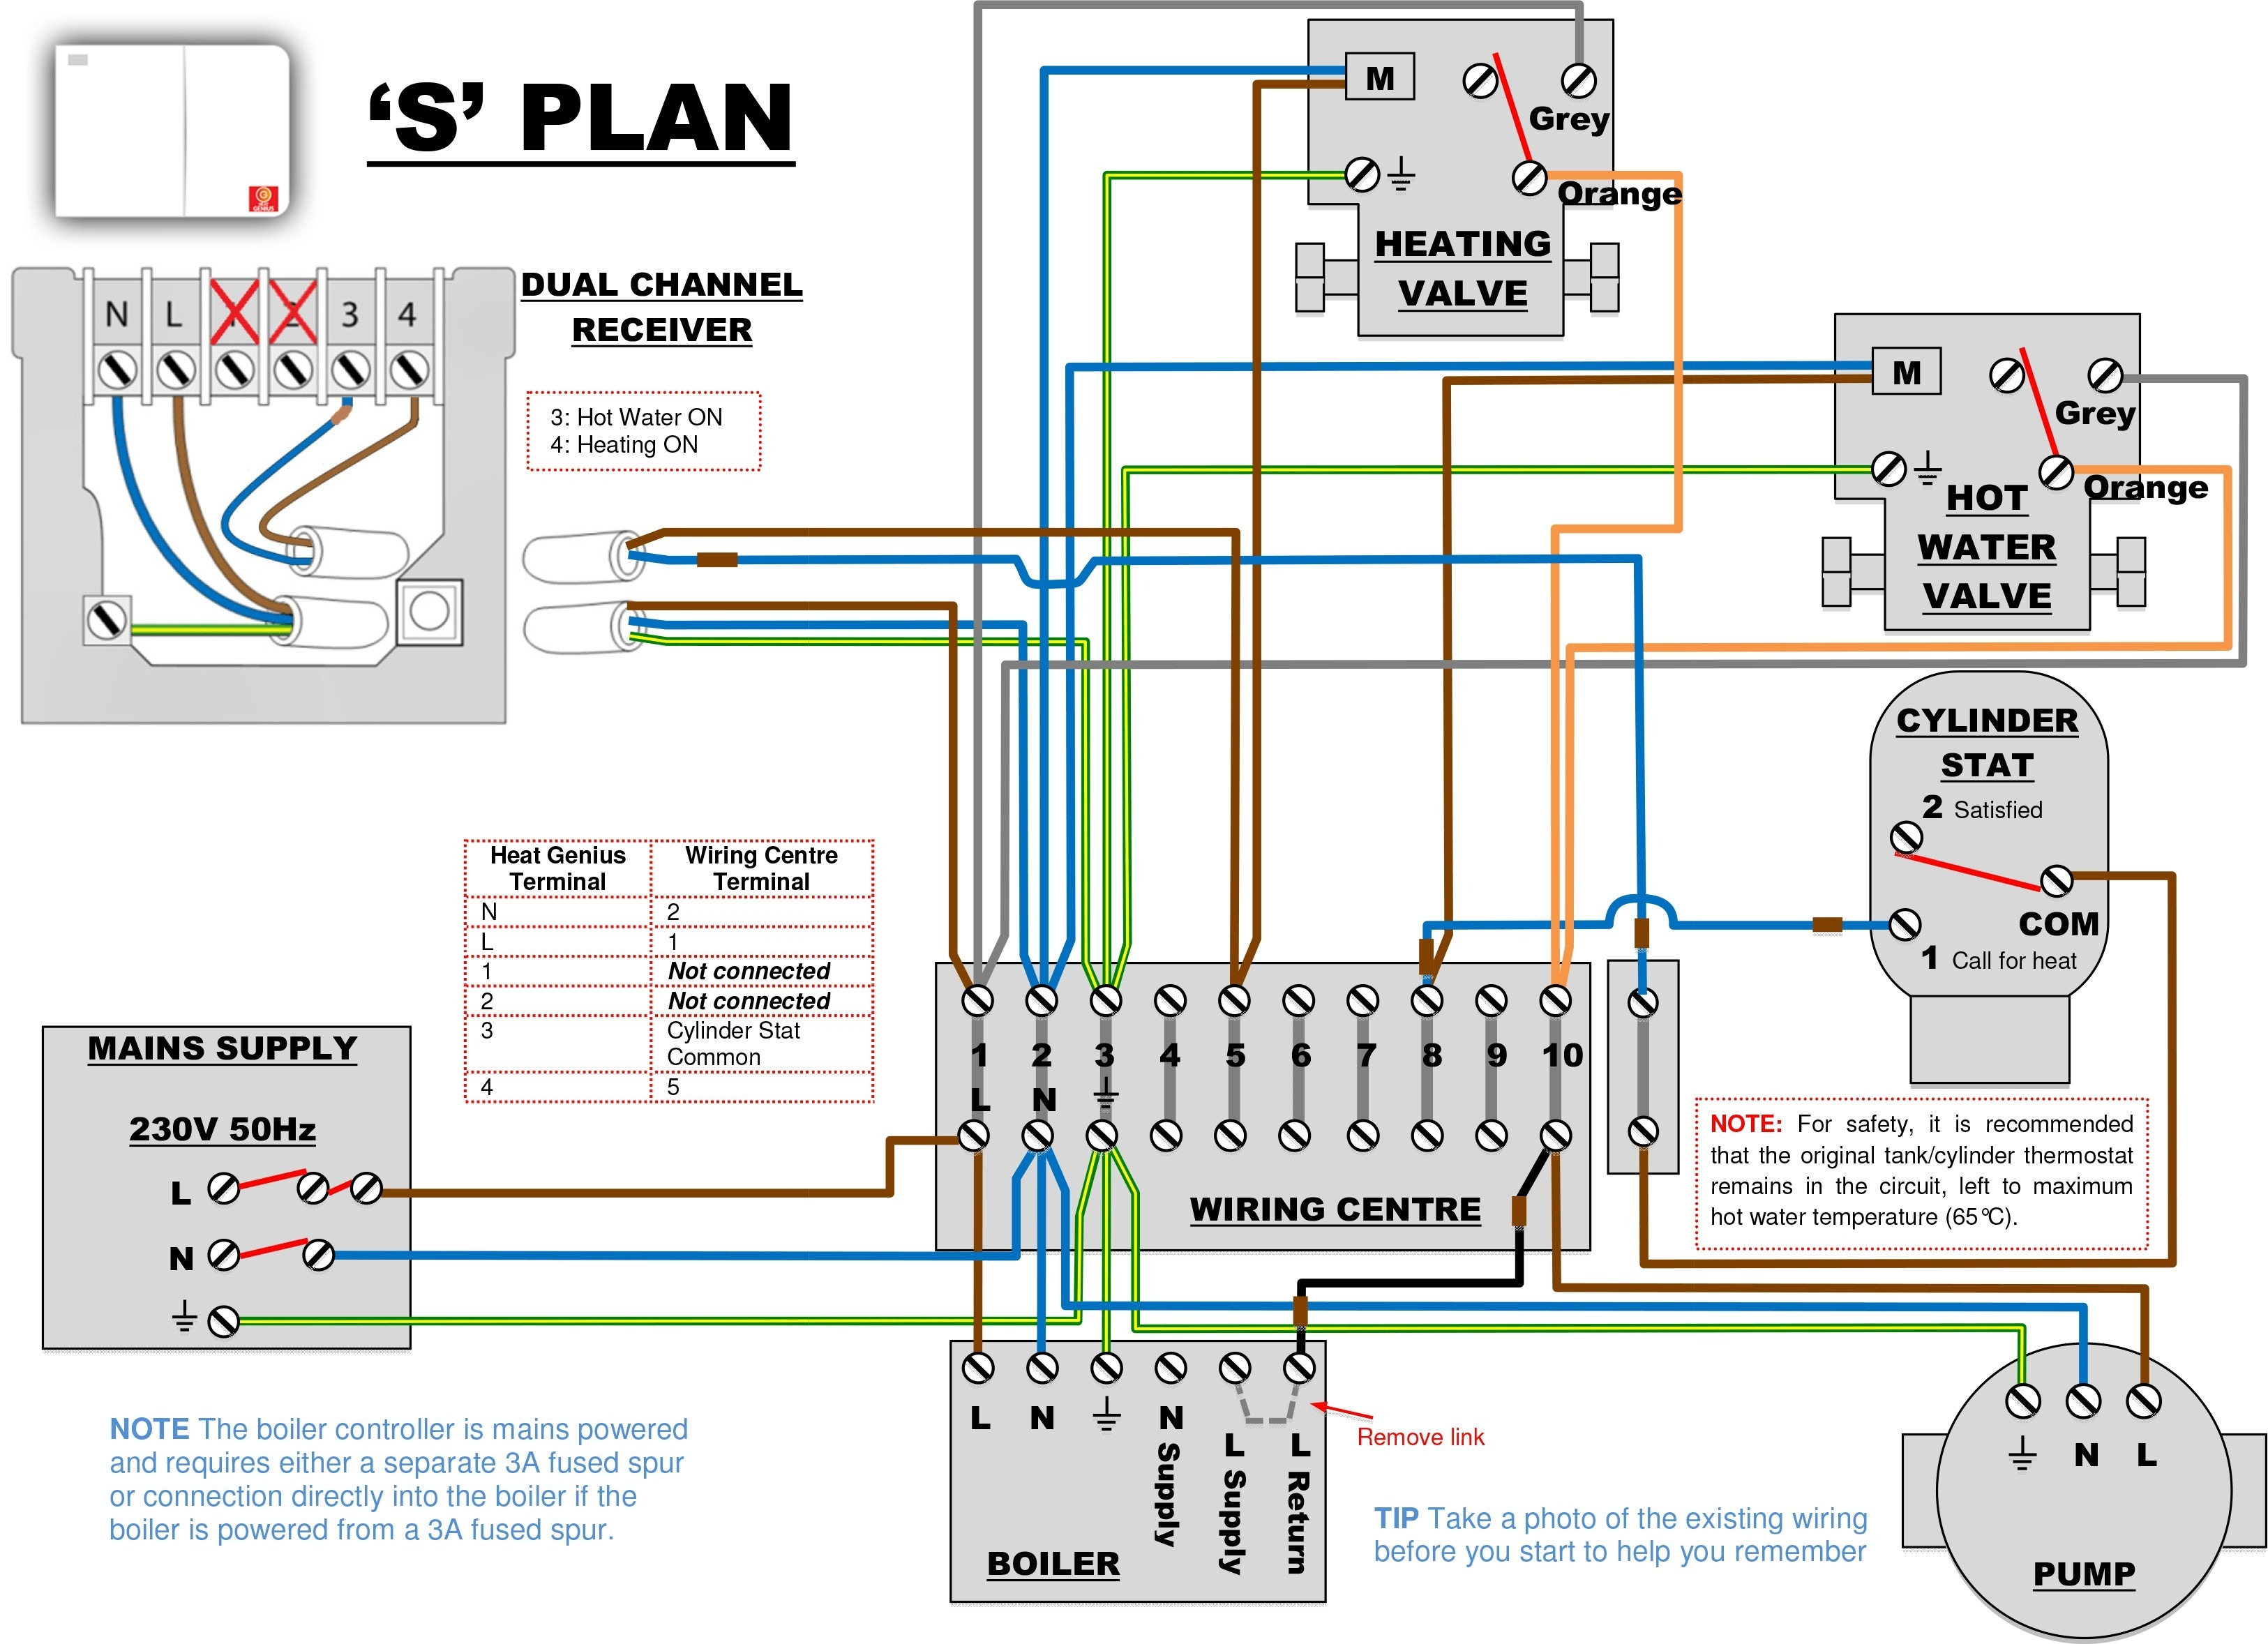 nest heat pump wiring diagram Collection-nest thermostat heat pump wiring diagram Download Heat Pump thermostat Wiring Diagram New Nest thermostat 20-f